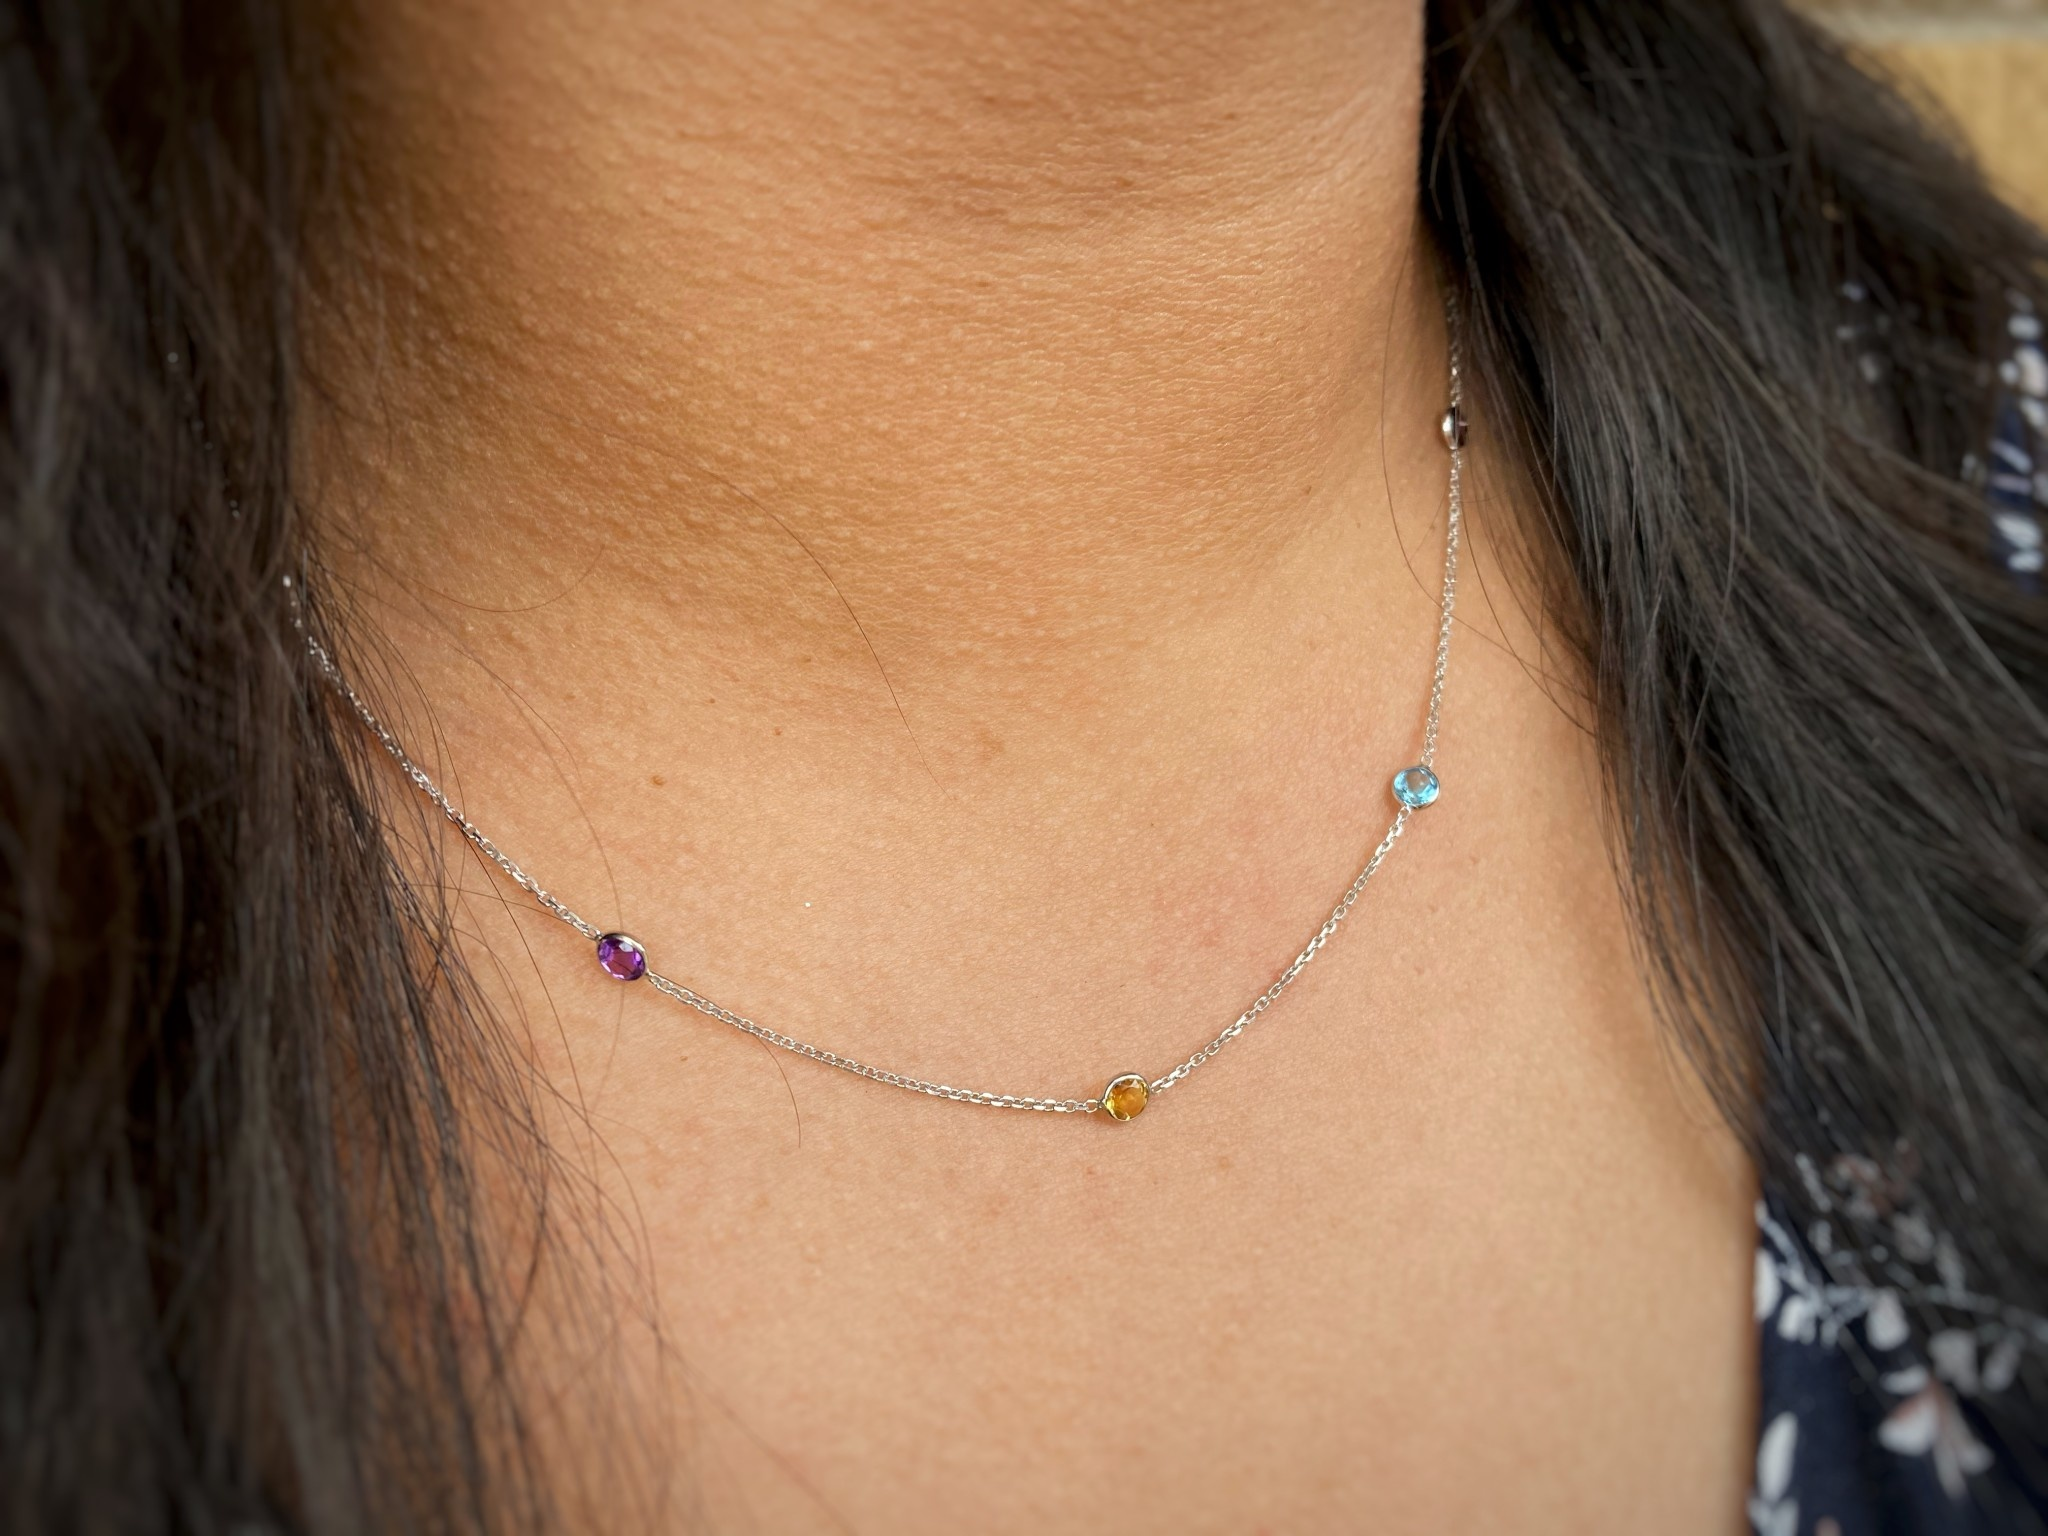 14K White Gold Multicolored Stones Necklace